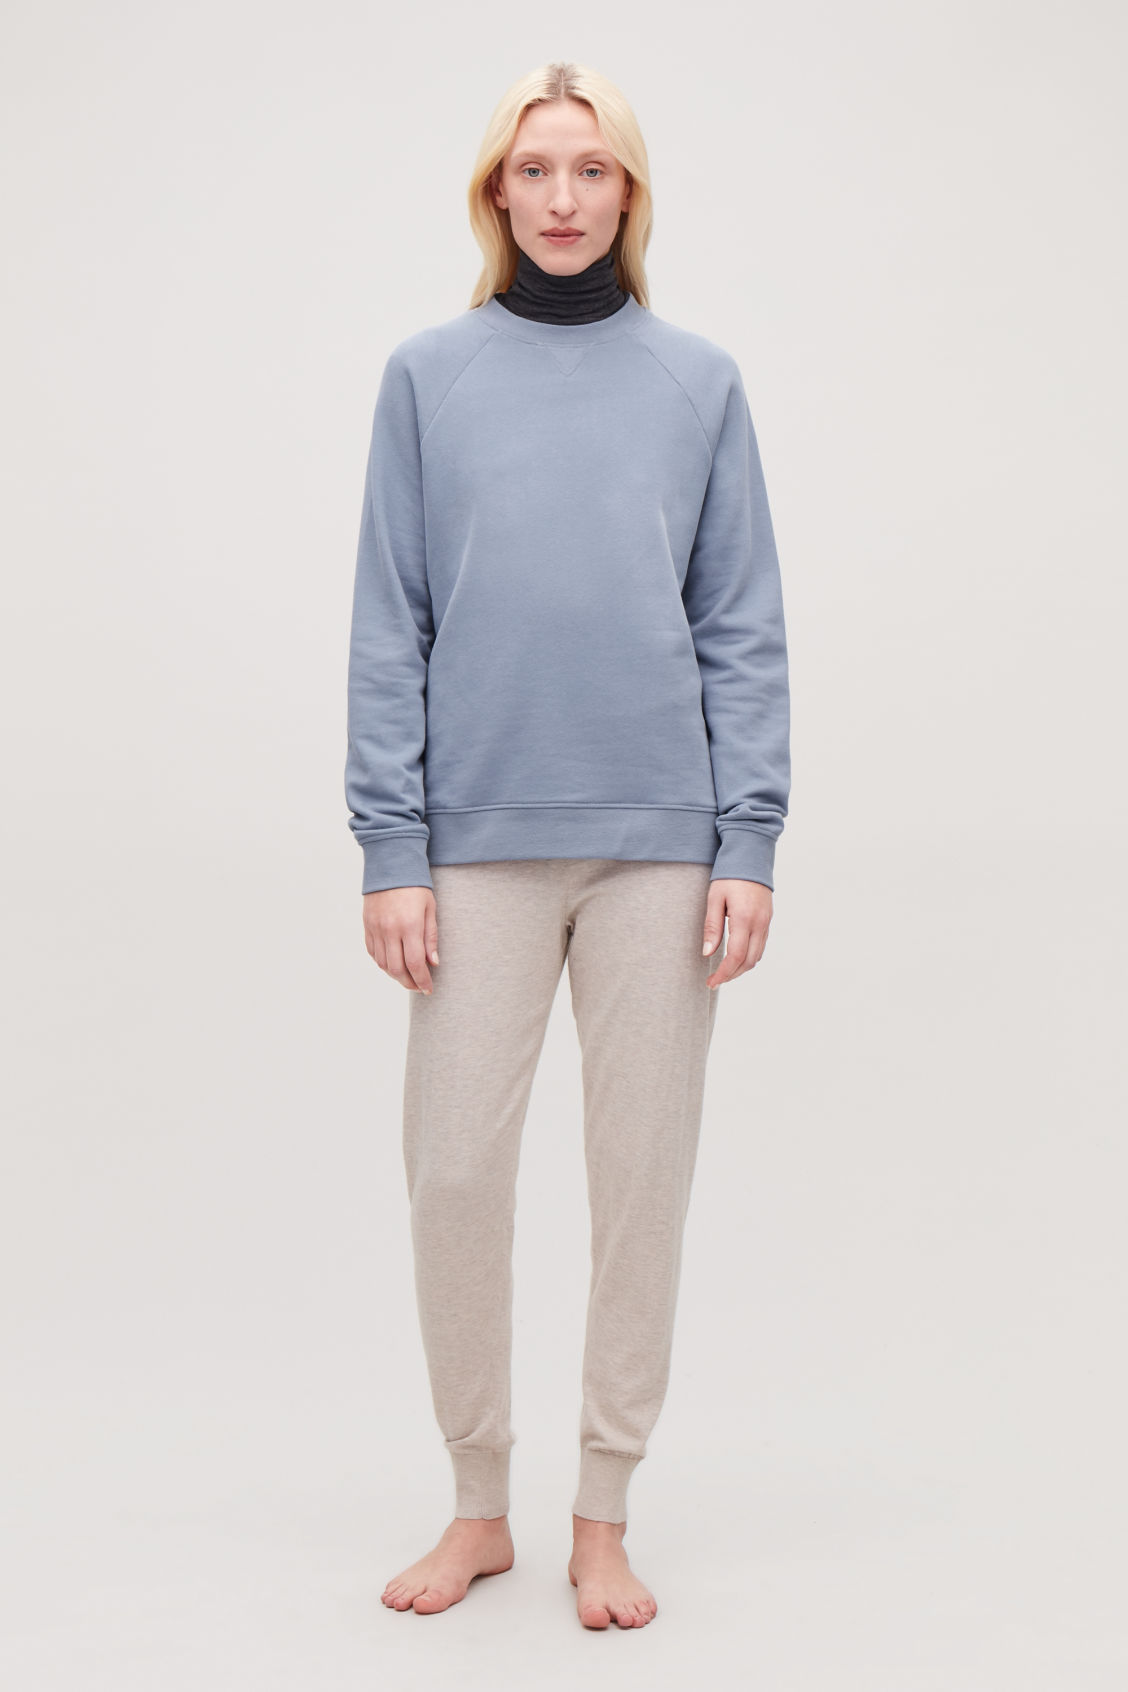 Detailed image of Cos relaxed jersey sweatshirt in blue